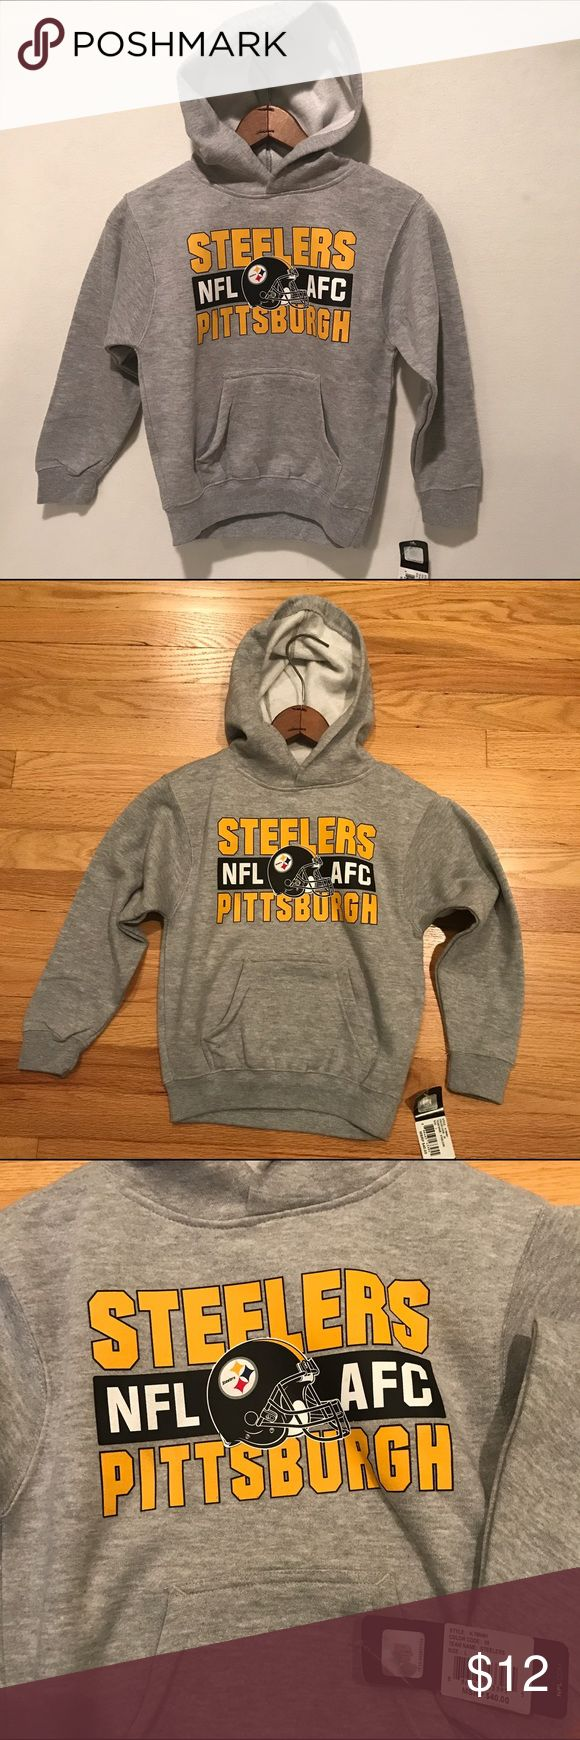 NWT REEBOK Kids Steelers Hoodie Large NFL Age 7 Reebok NFL Pittsburgh Steelers Hoodie Sweatshirt  Condition:Brand new with tags Style:Hoodie Size:child's Large. 7 years.  Shoulder width: 15 inches Length (shoulder to bottom hem): 19 inches Material: 65% cotton, 35% polyester Reebok Shirts & Tops Sweatshirts & Hoodies